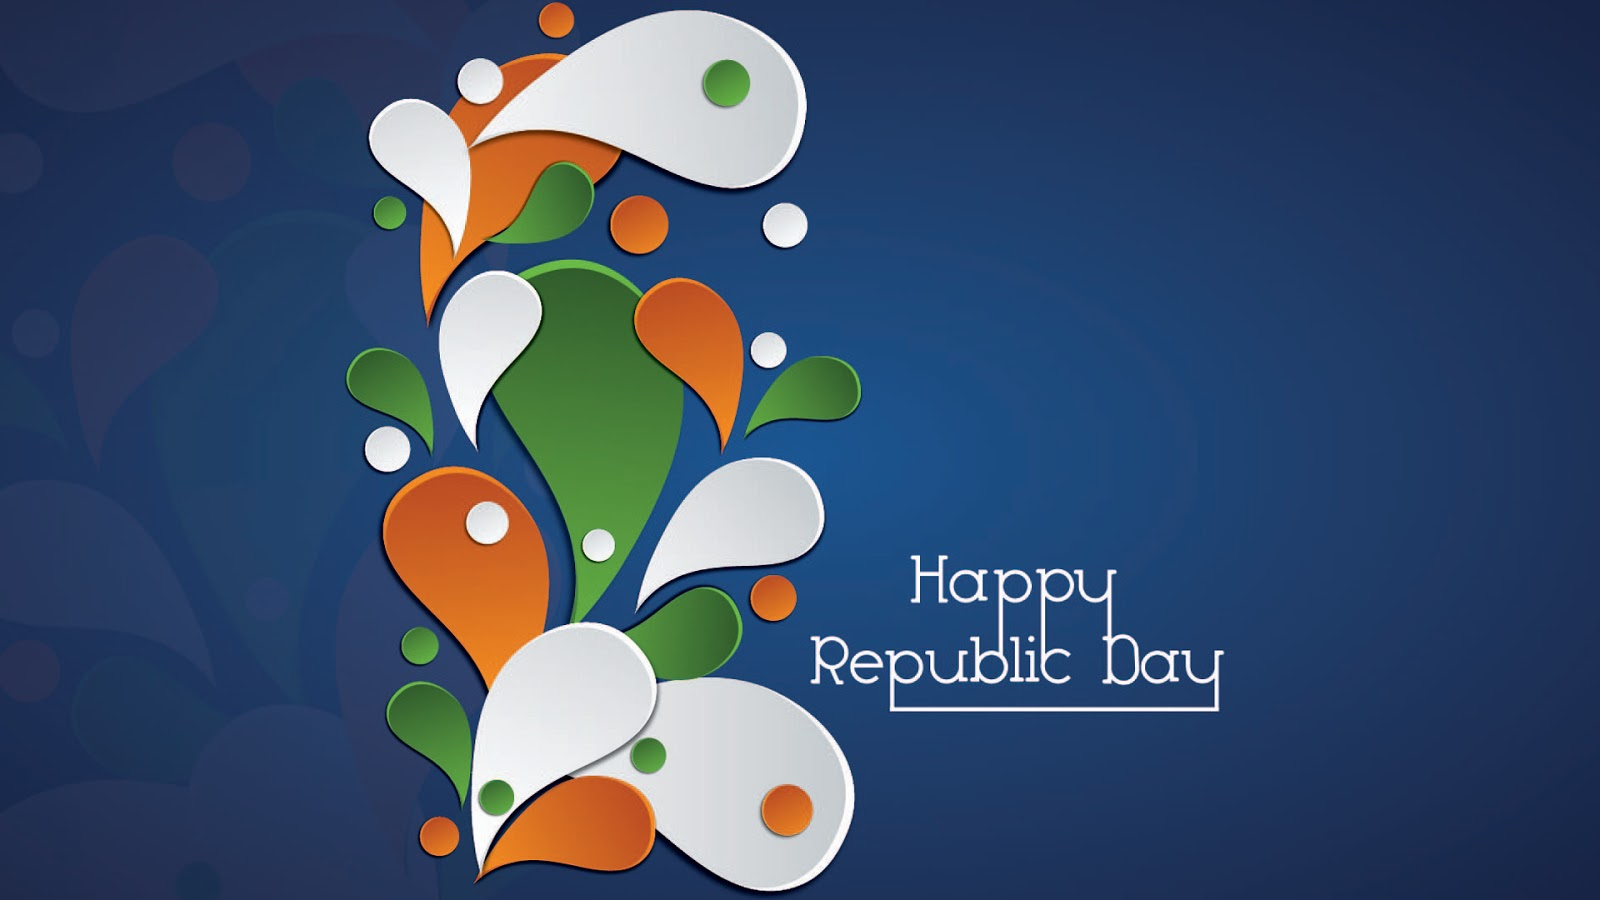 26 january happy republic day 2018 wishes sms quotes facebook happy republic day 2018 wishes sms quotes facebook whatsapp status m4hsunfo